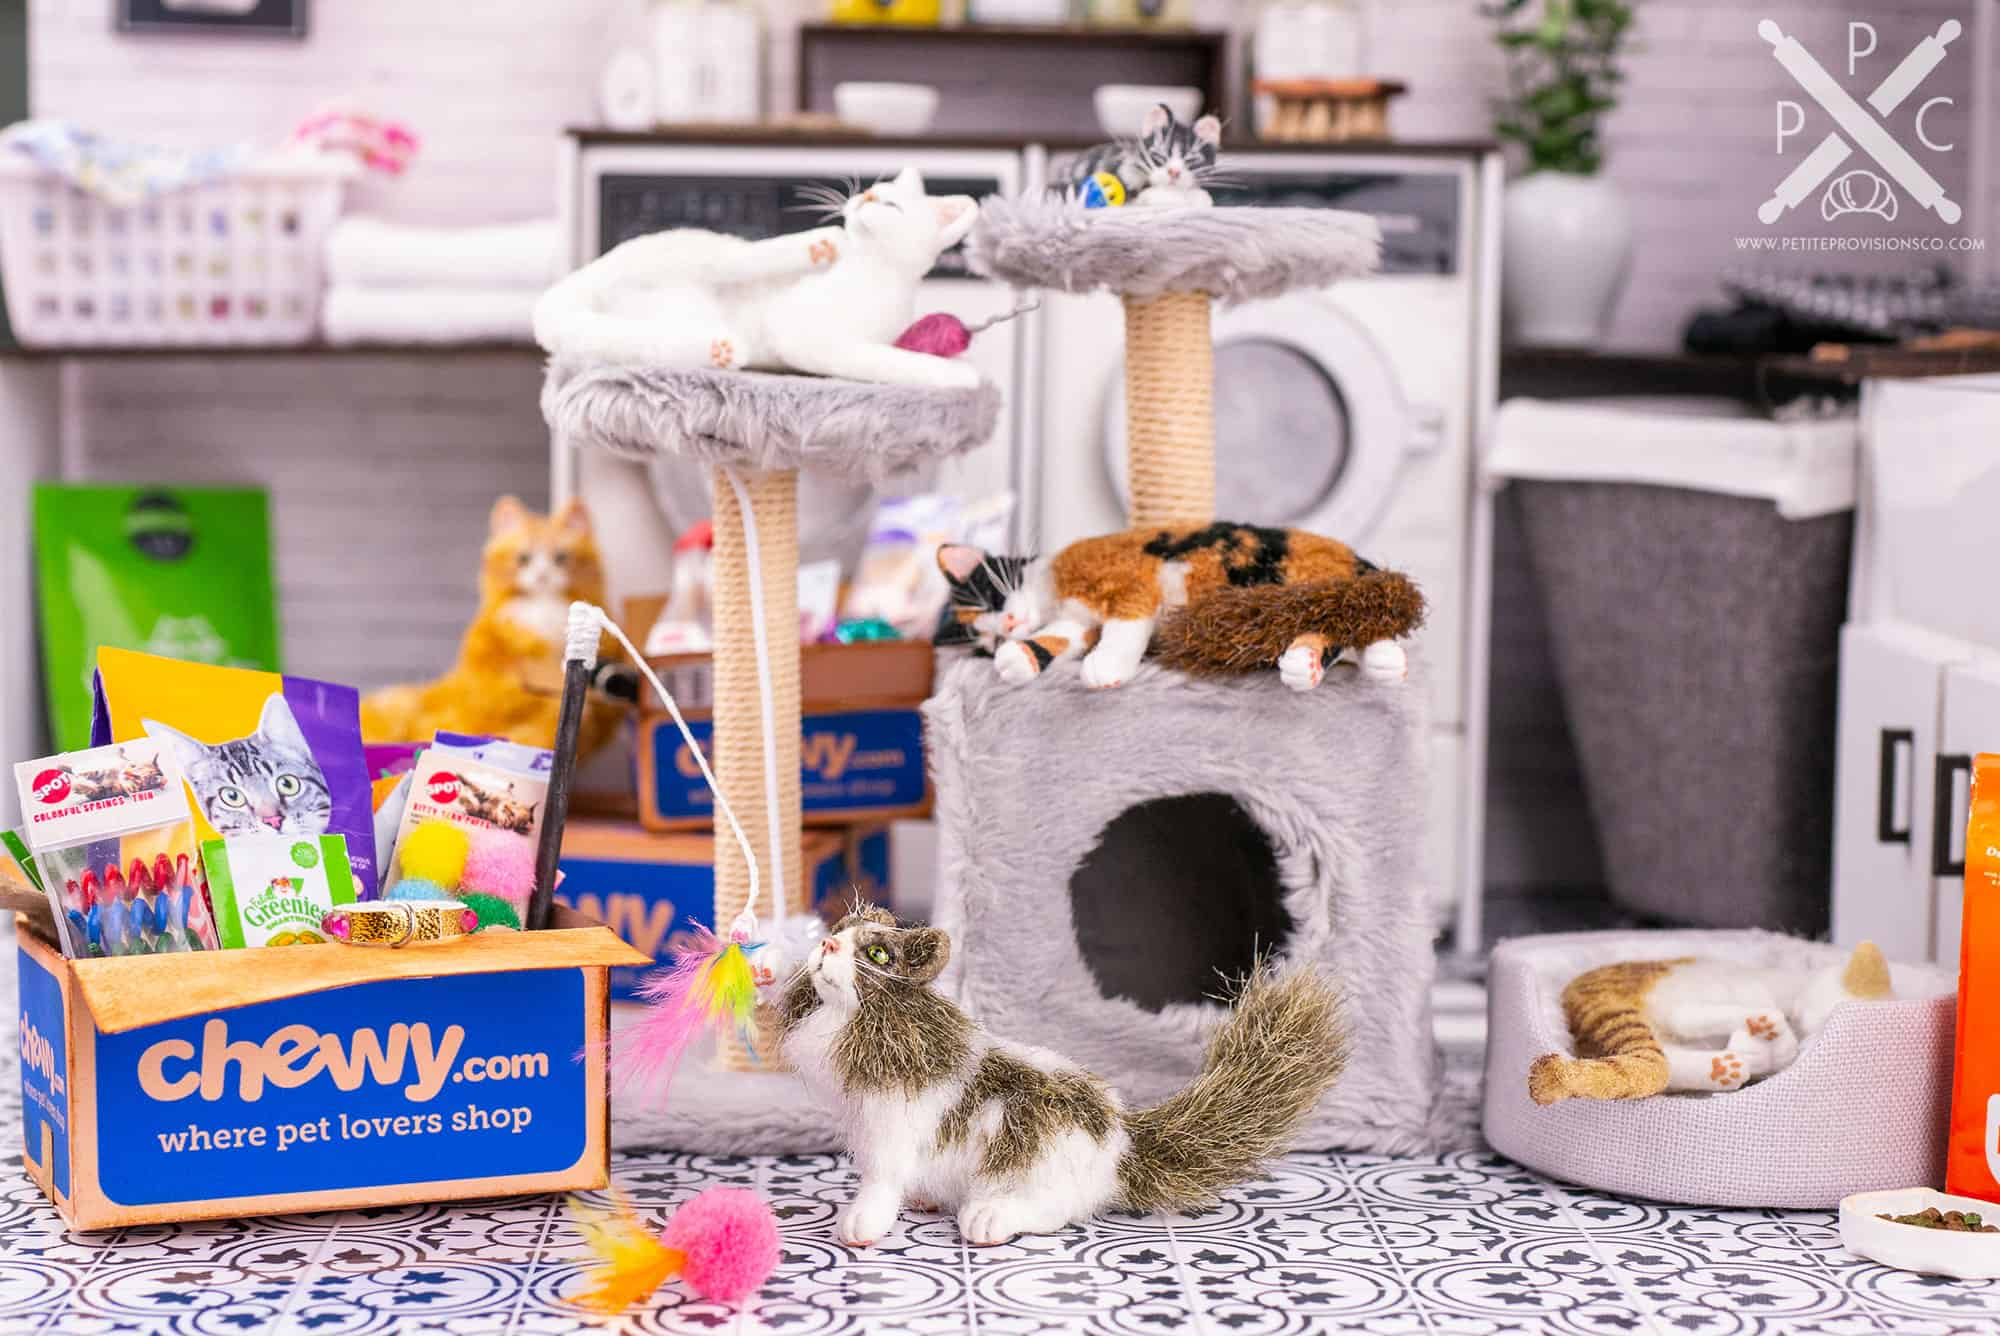 Dollhouse miniature cats and kittens with shipping boxes of toys and food from Chewy in a one inch scale scene by Erika Pitera, The Petite Provisions Co.